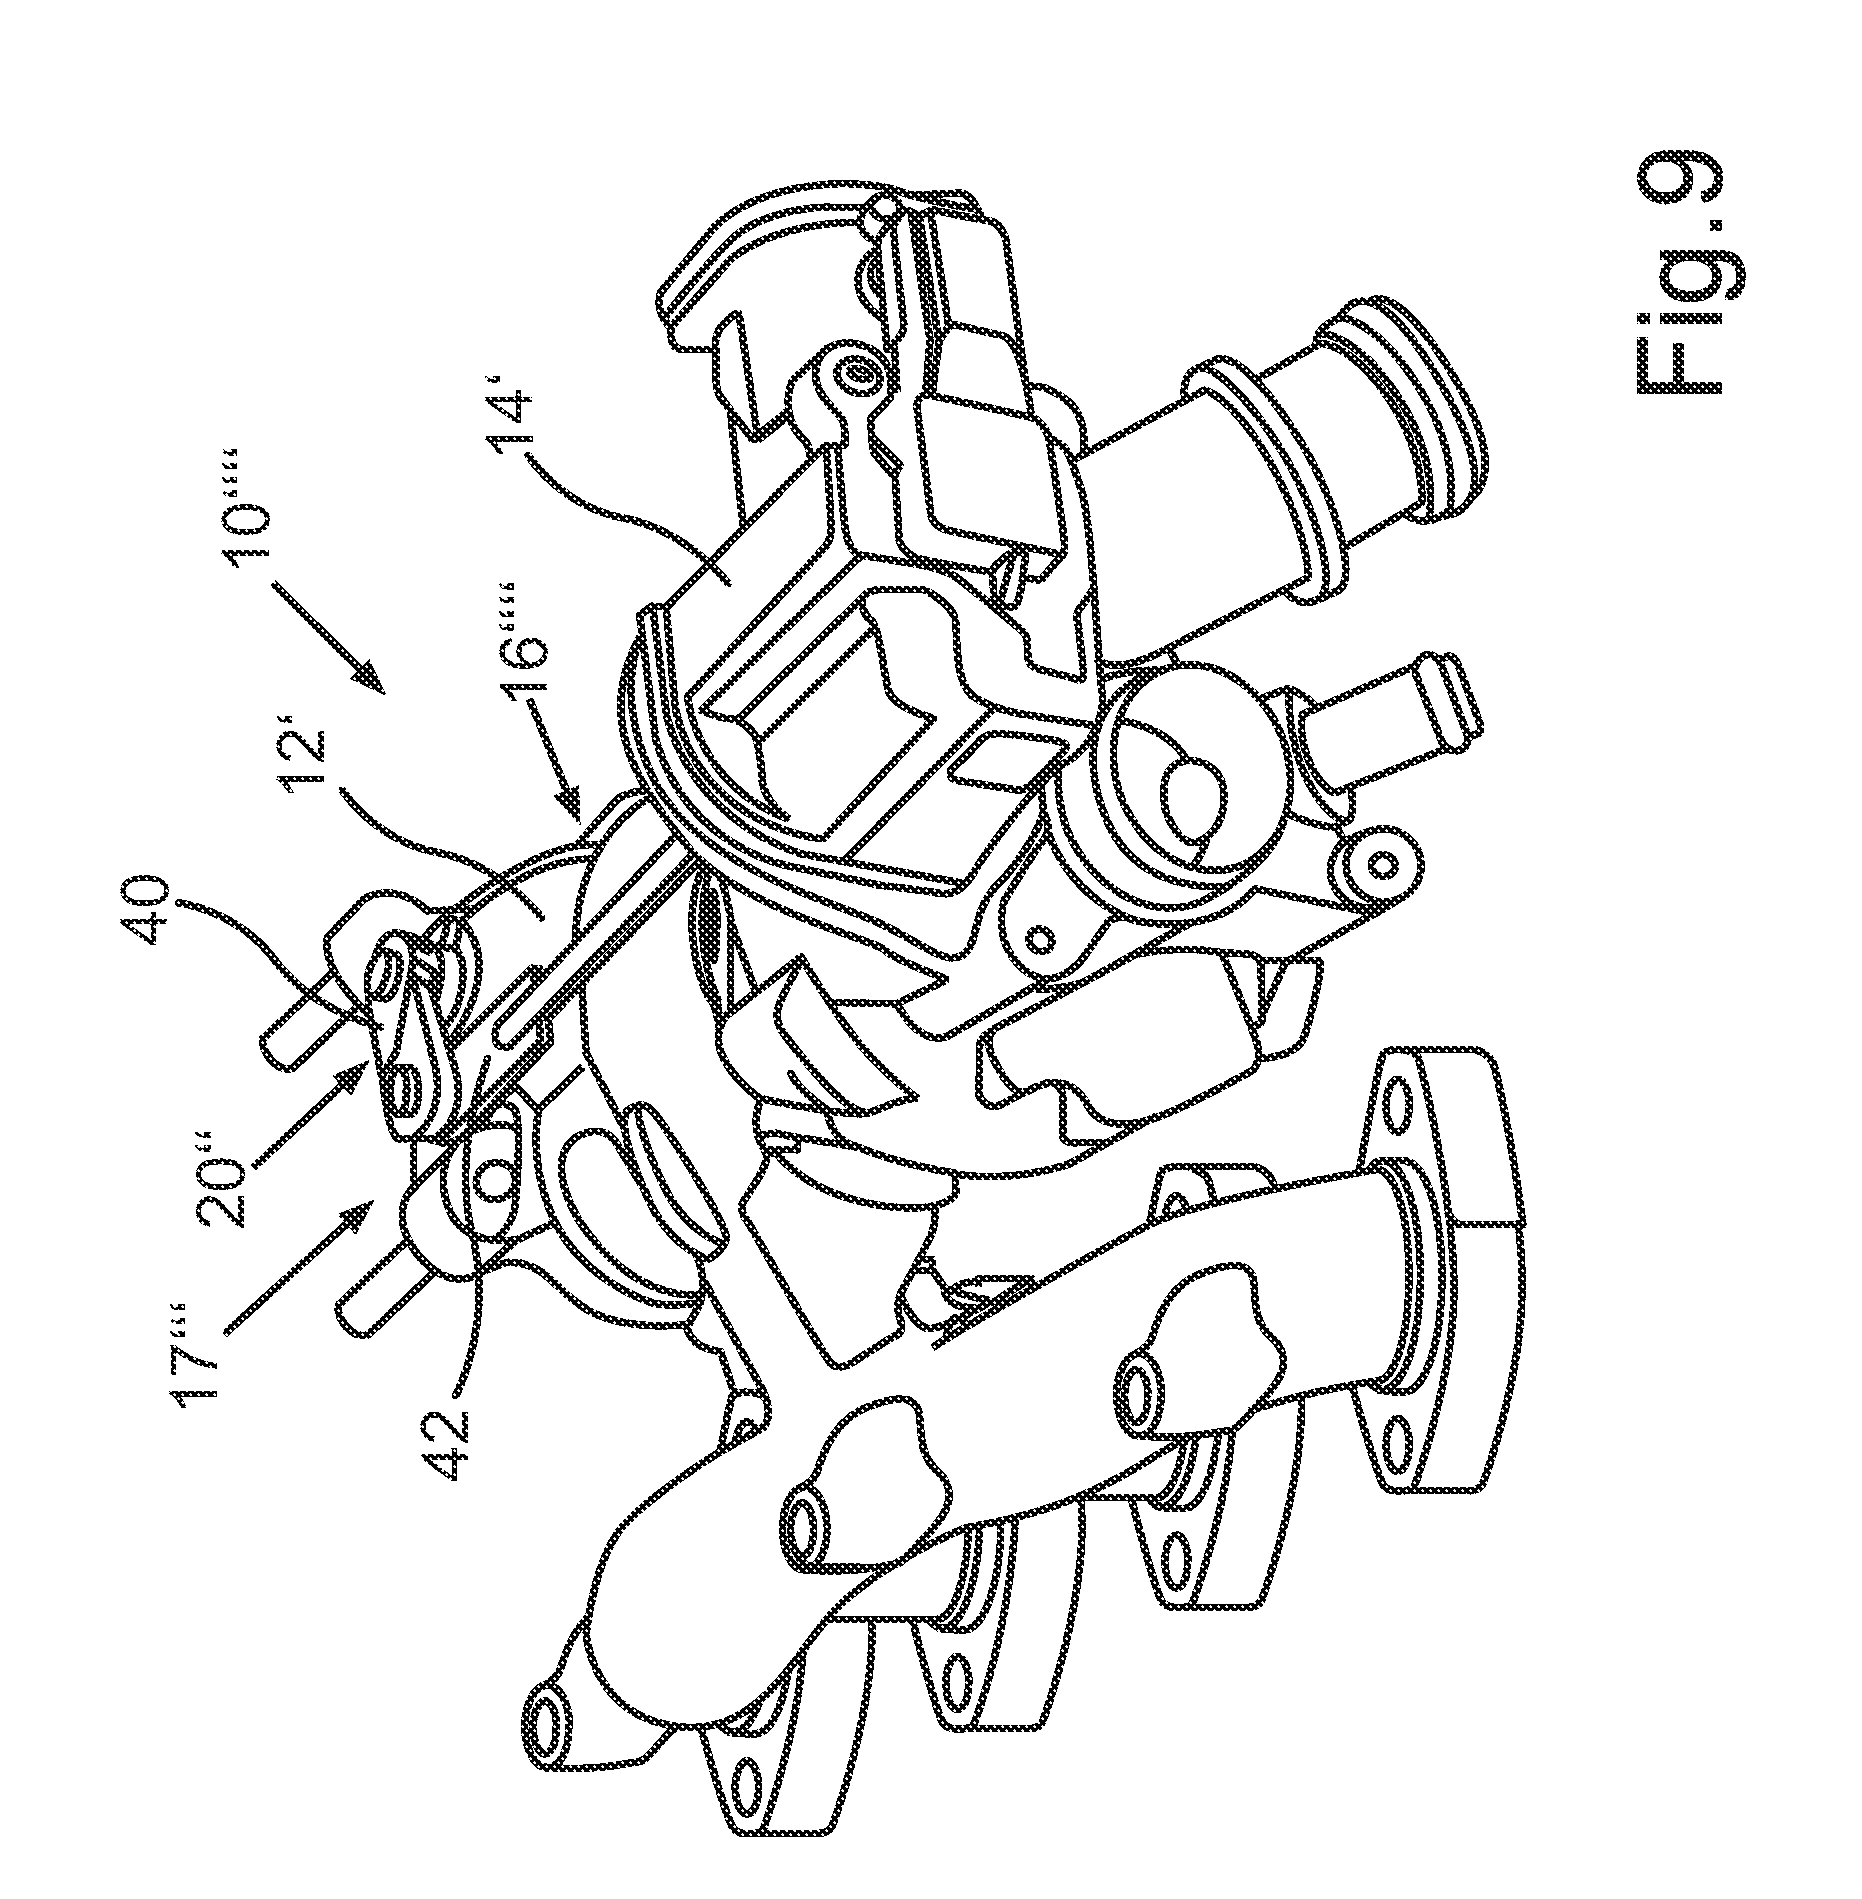 Electric Turbocharger Patents: Method For Mounting And Setting An